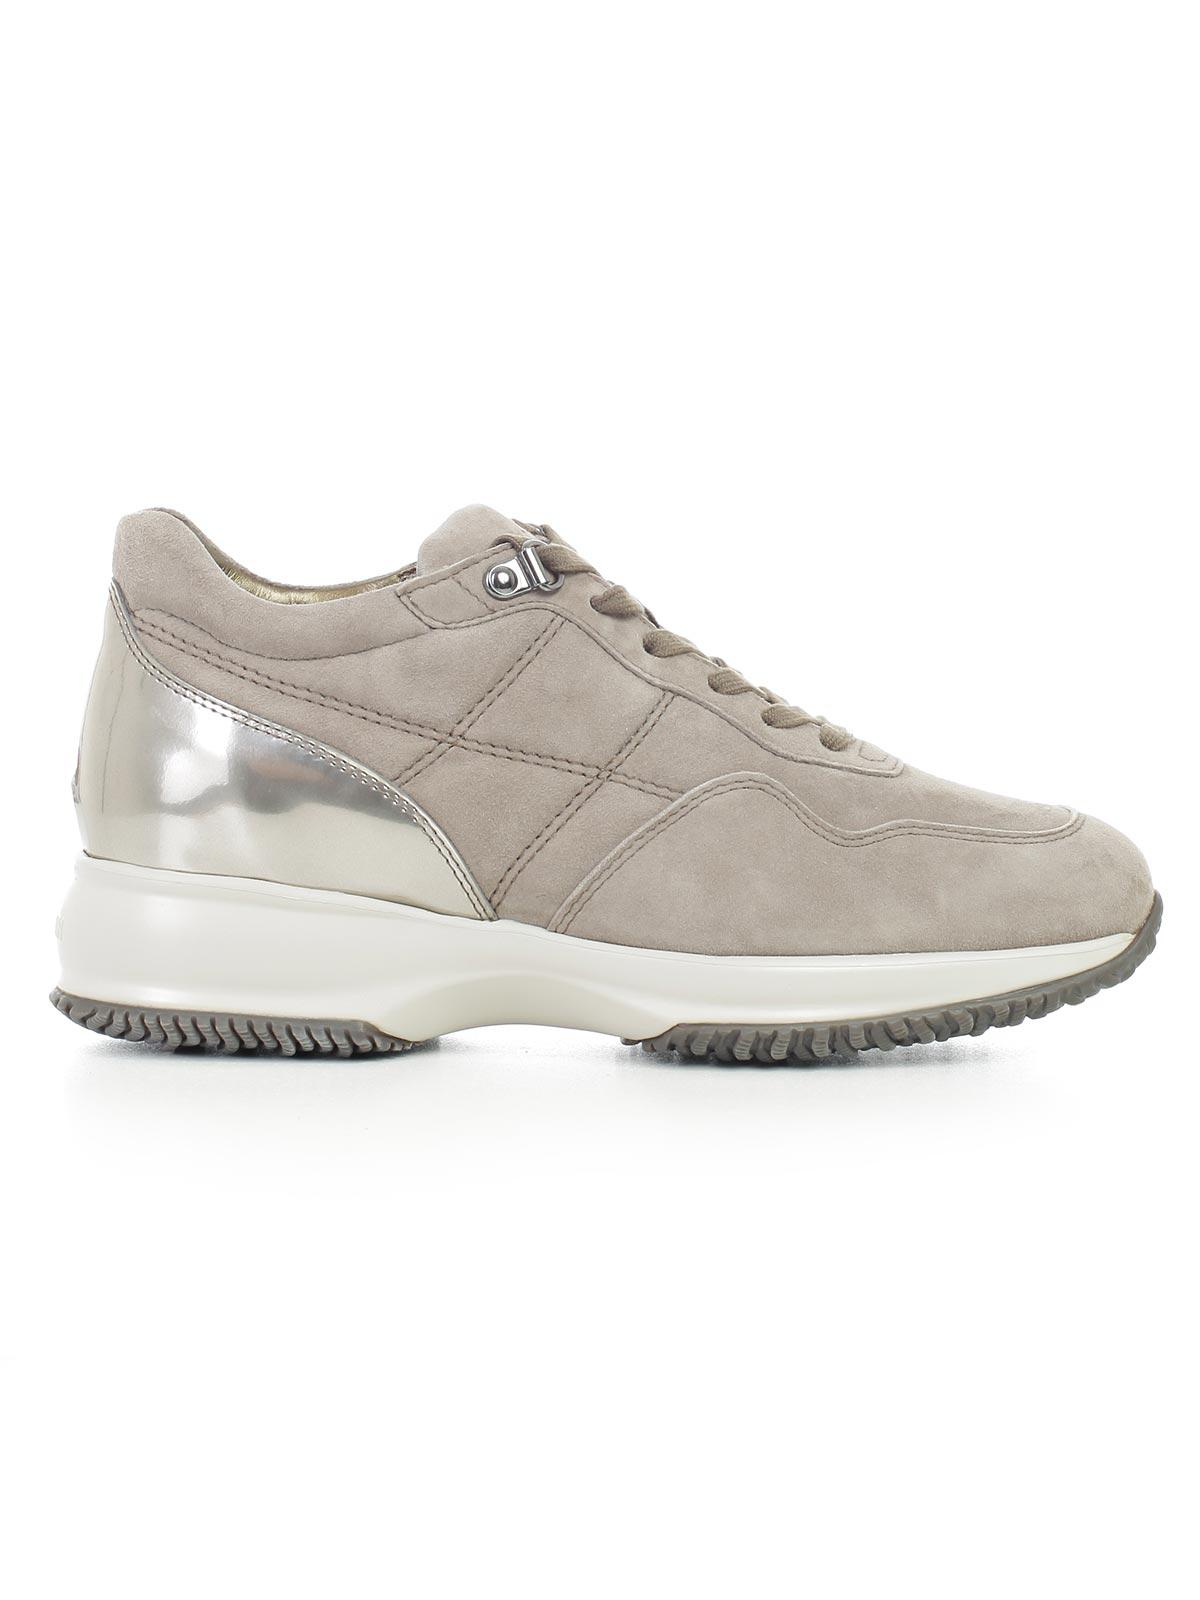 Sneakers H302 suede grey beige perforated logo Hogan In China Clfc962a0